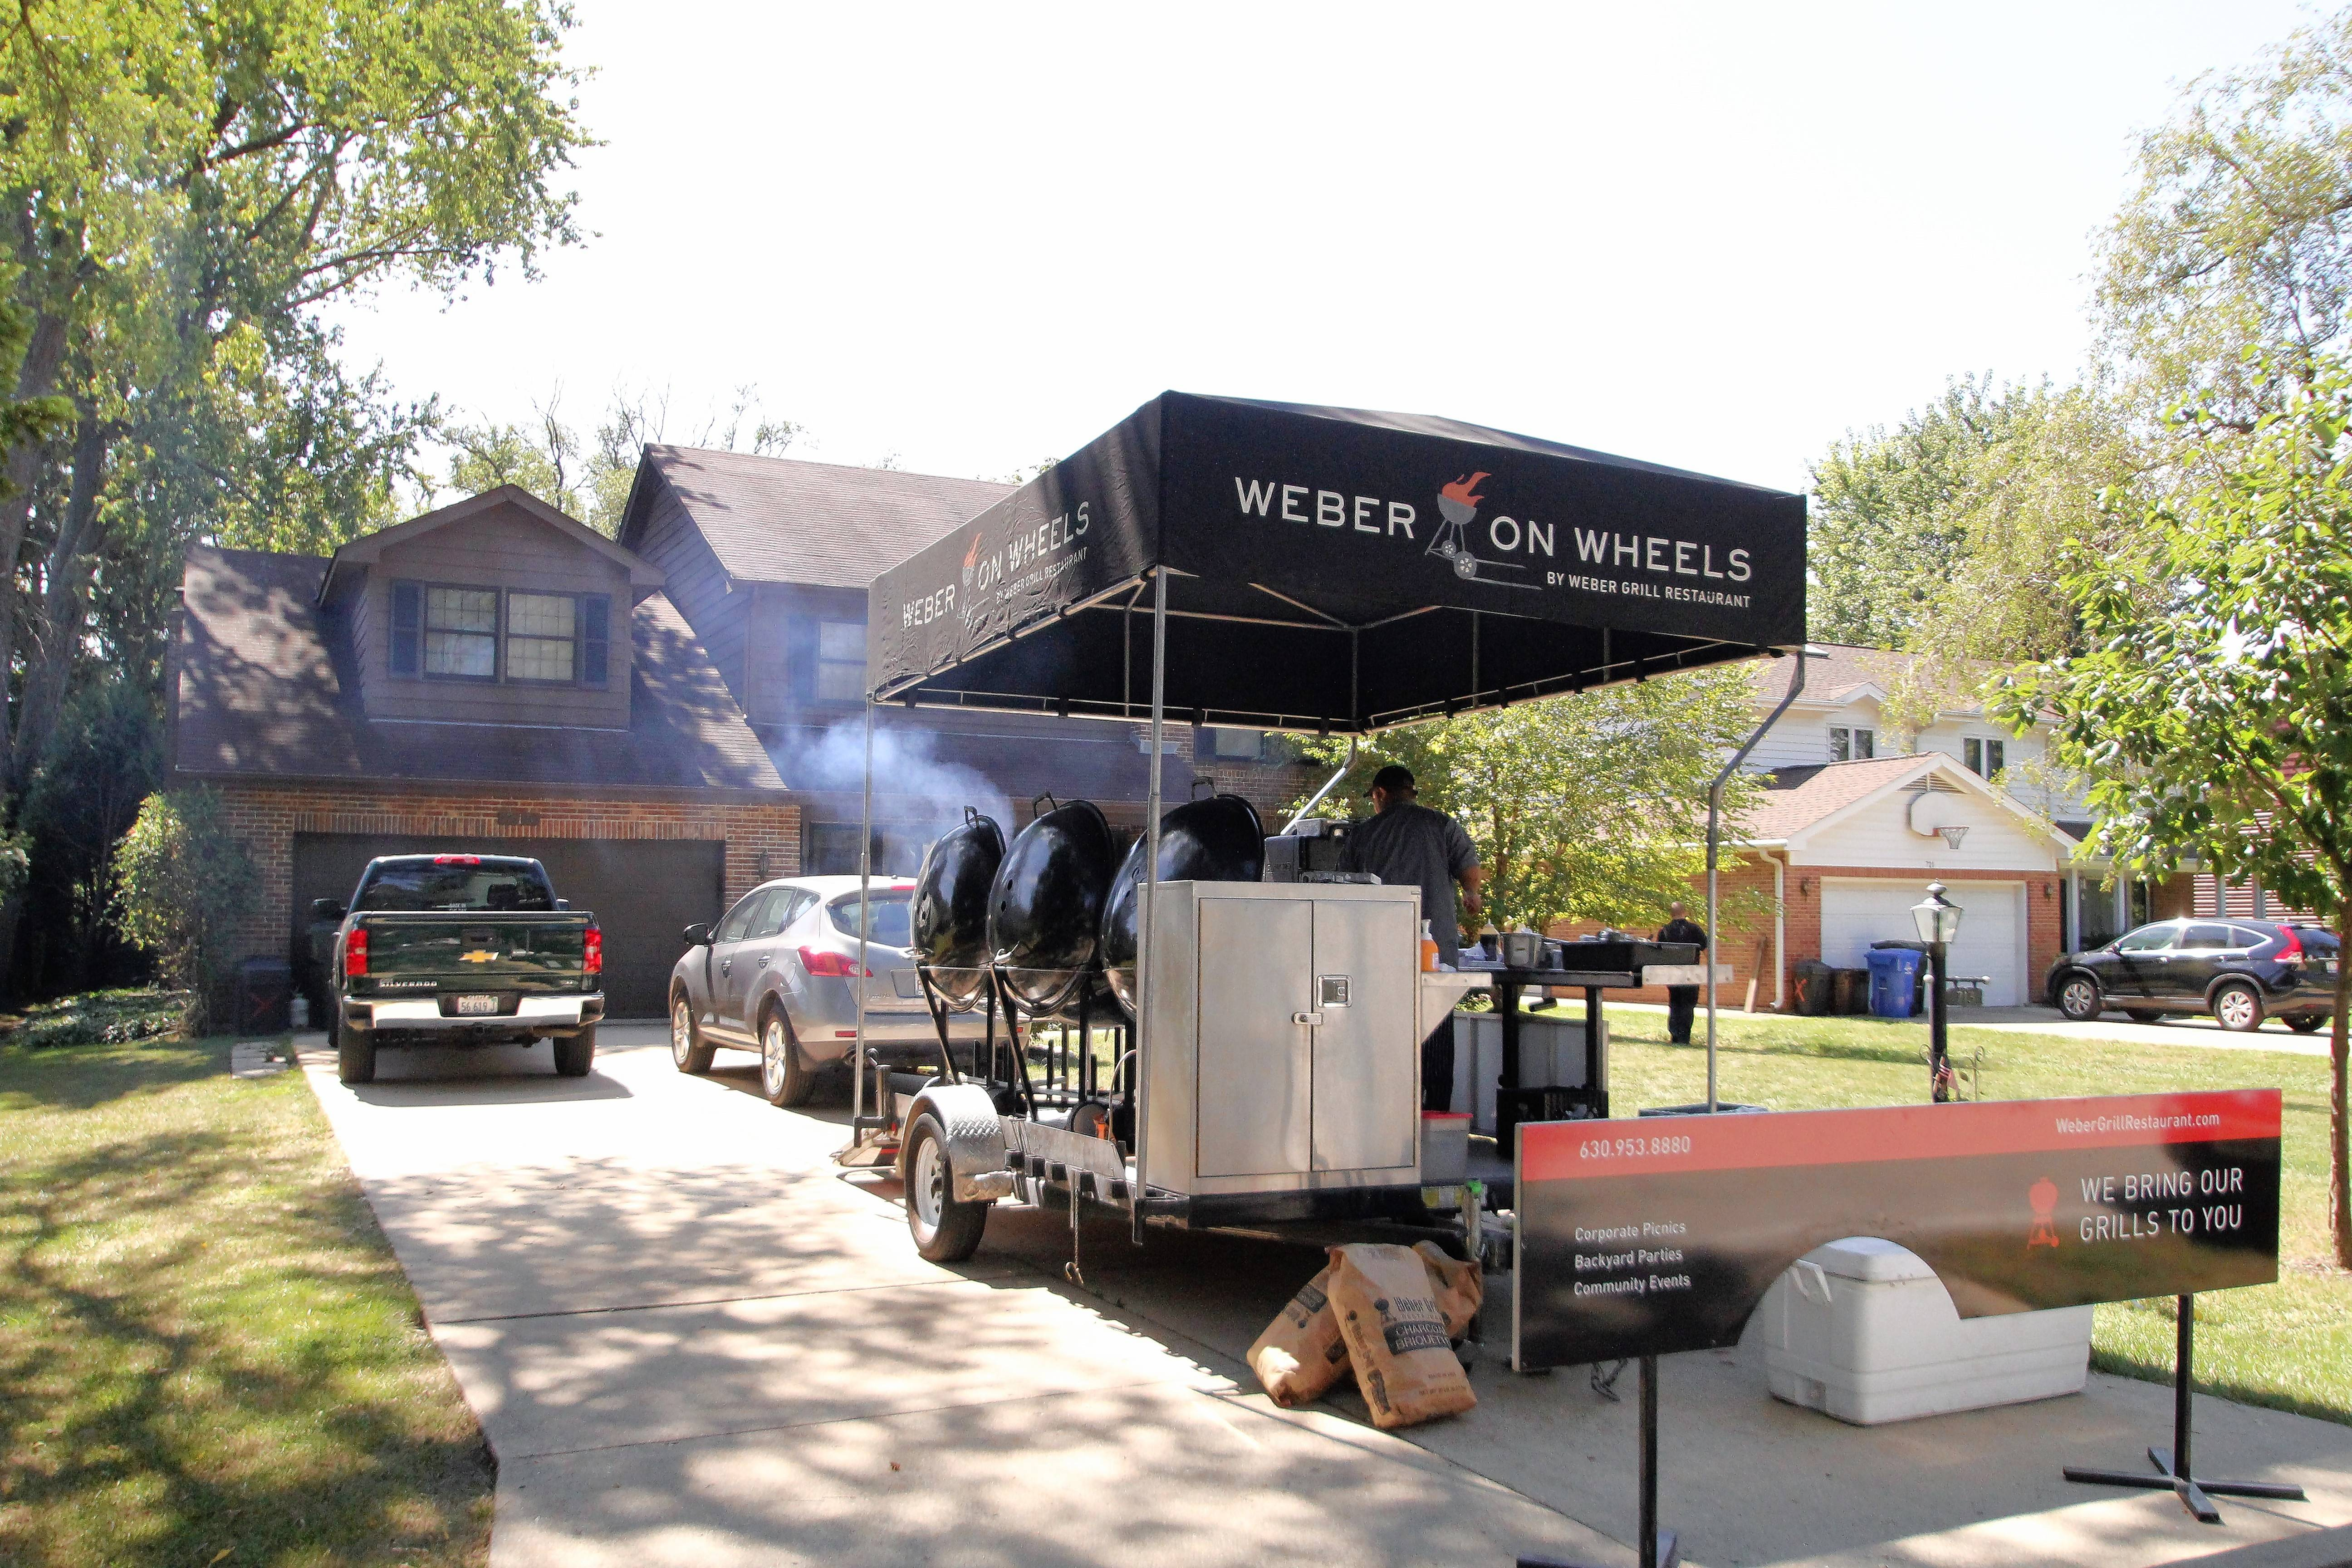 A Des Plaines couple, Shirley and Larry Allison, recently won a Weber on Wheels catered party valued at $2,500.